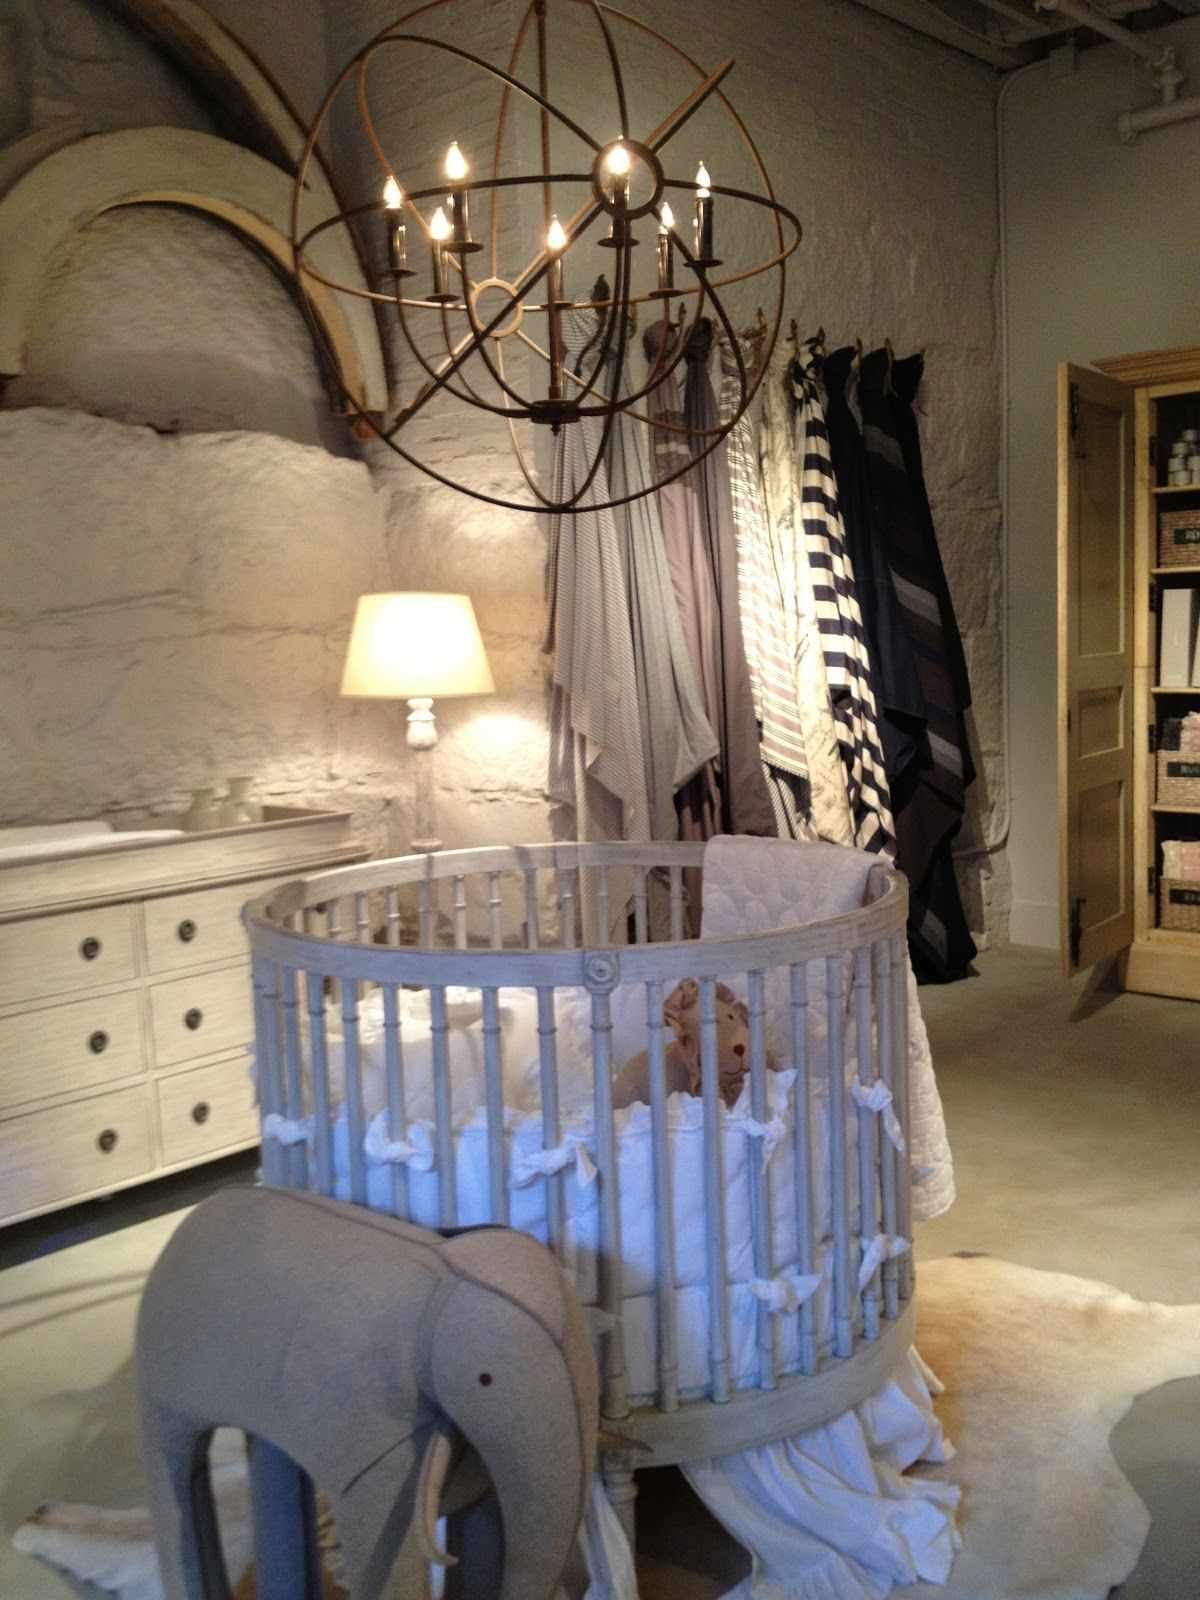 Luxury Dimgray Baby Cribs Warm Home Room Designed Unique Textured